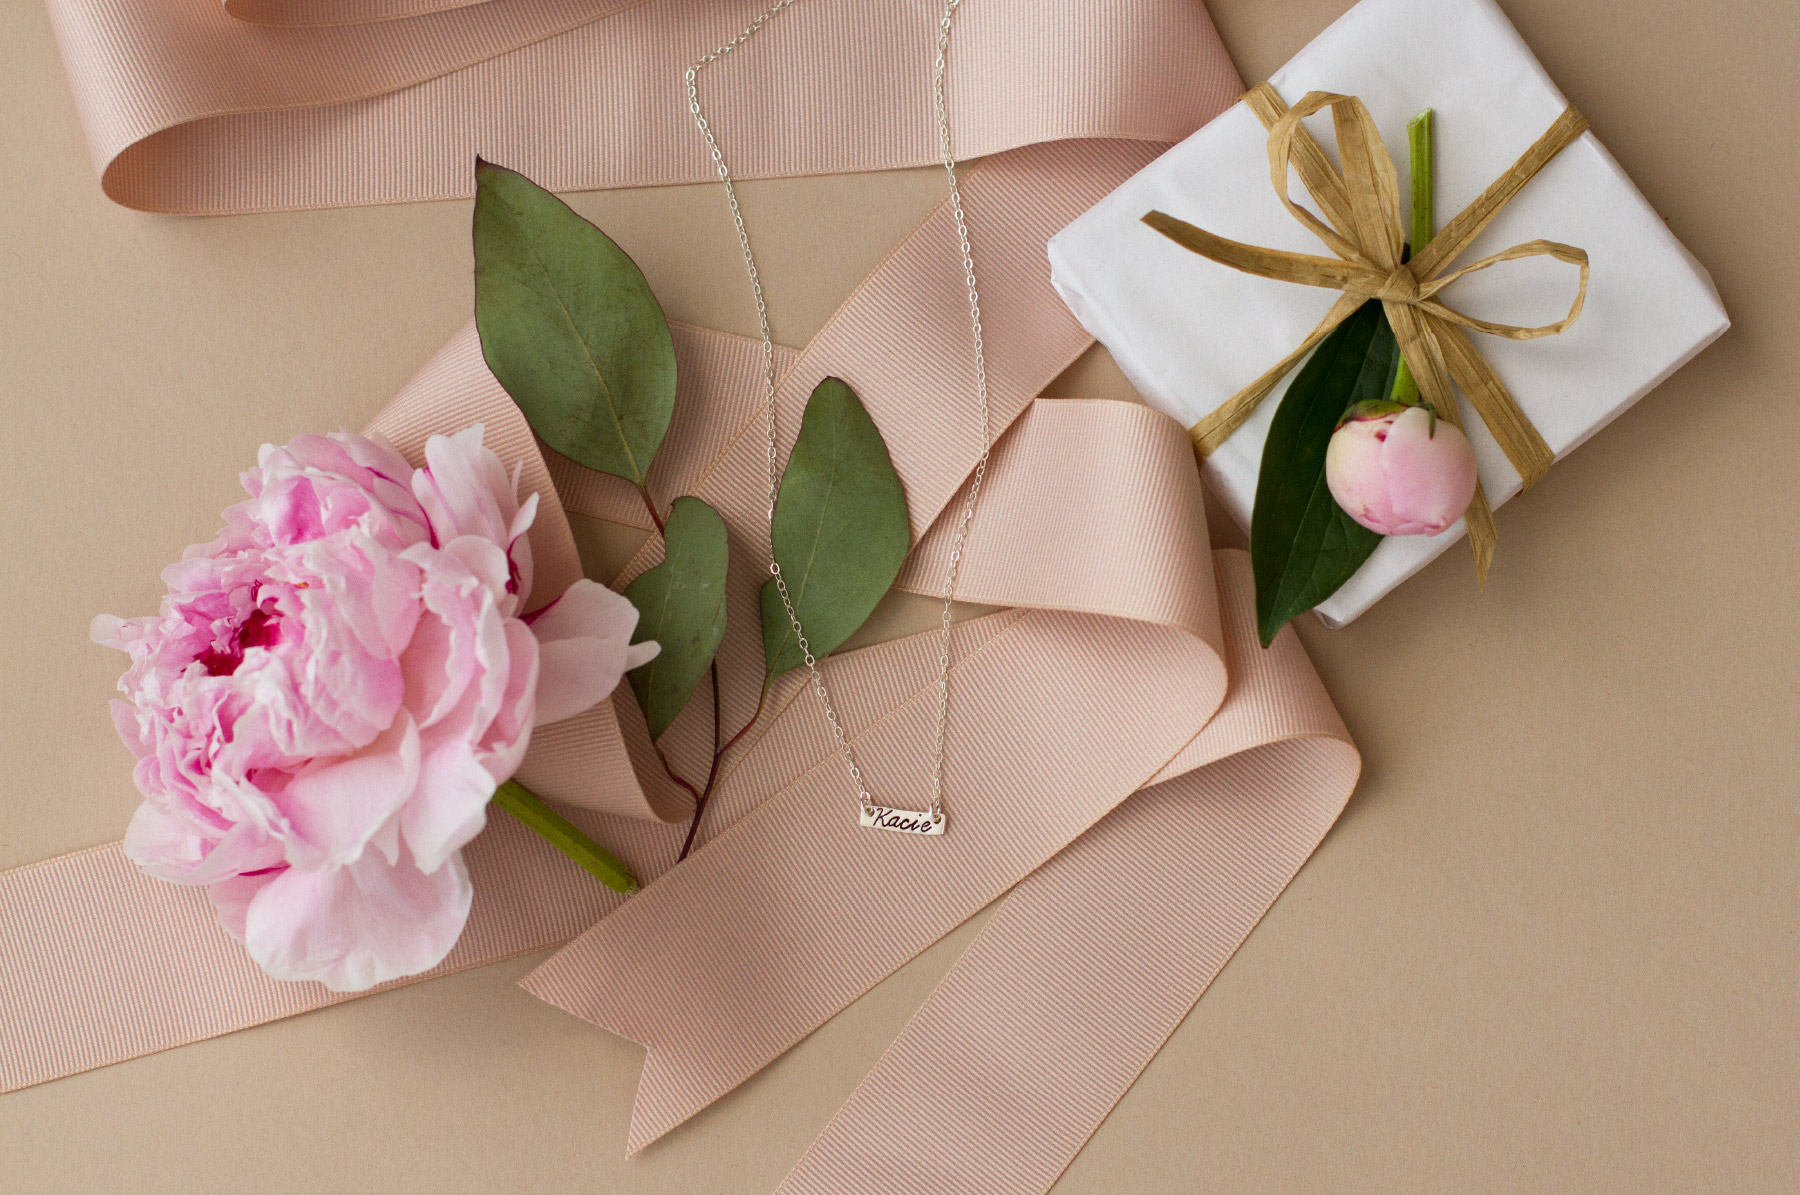 Fuze-Branding-Mommy-Jewelry-Customized-Jewerly-For-Mothers-Custom-Necklace-With-Stylized-Florals-Product-Lifestyle-Photography